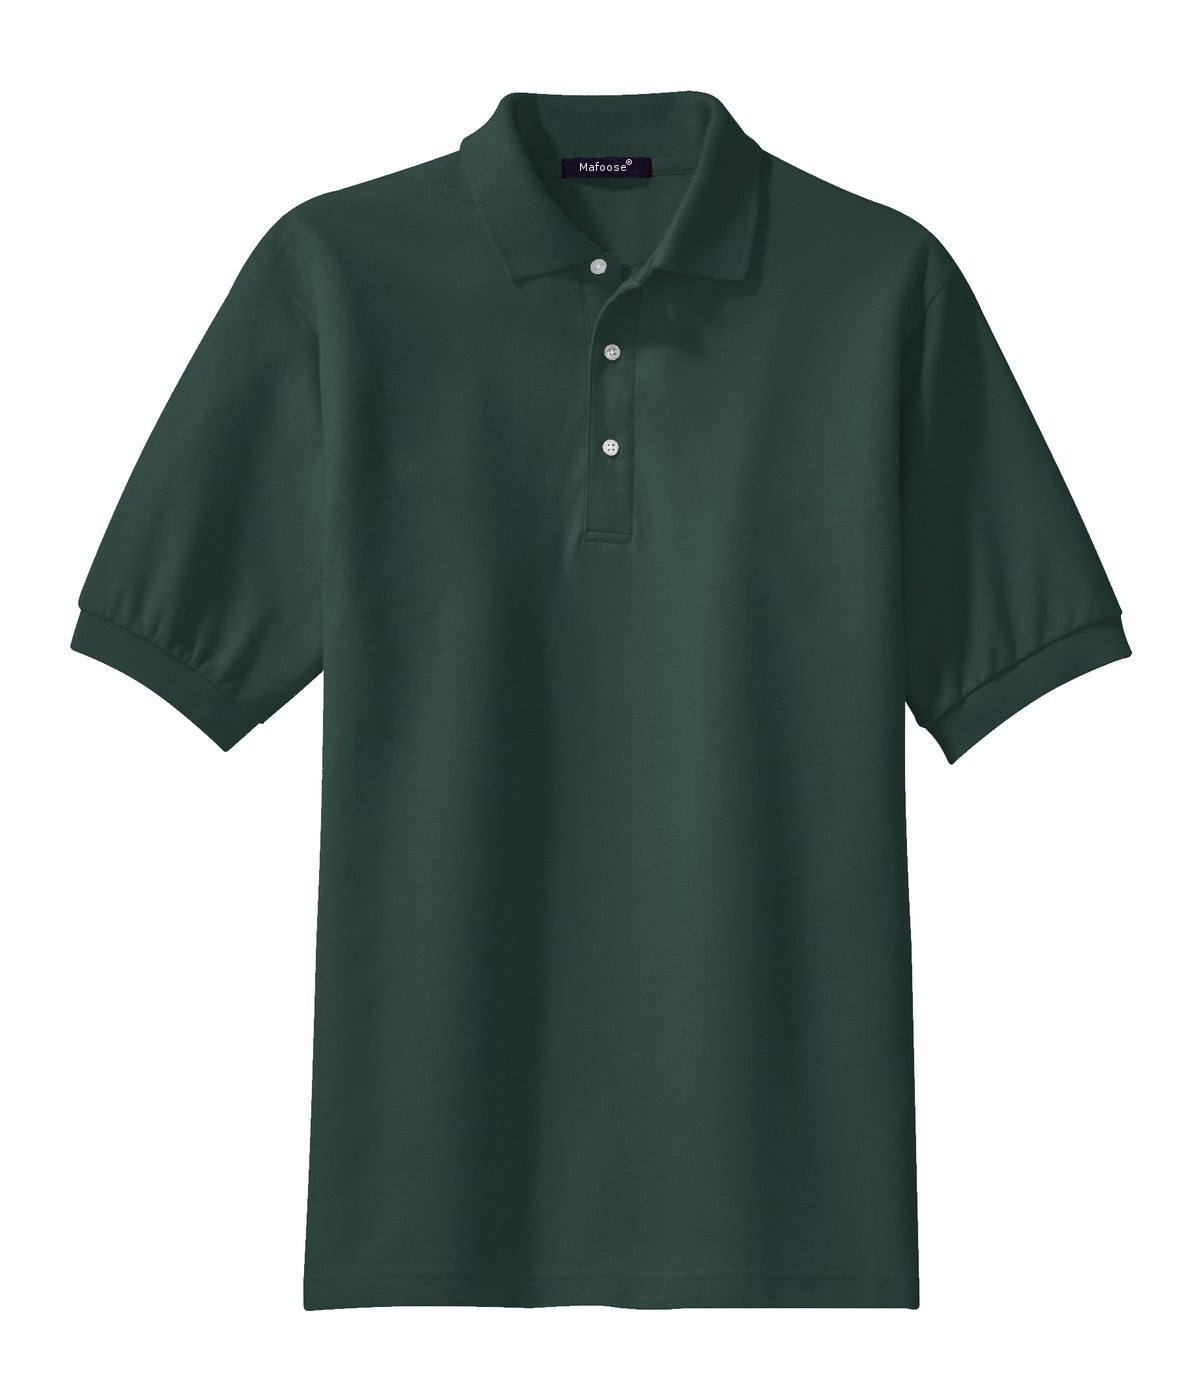 Mafoose Men's 100% Pima Cotton Polo Shirt Dark Green-Front